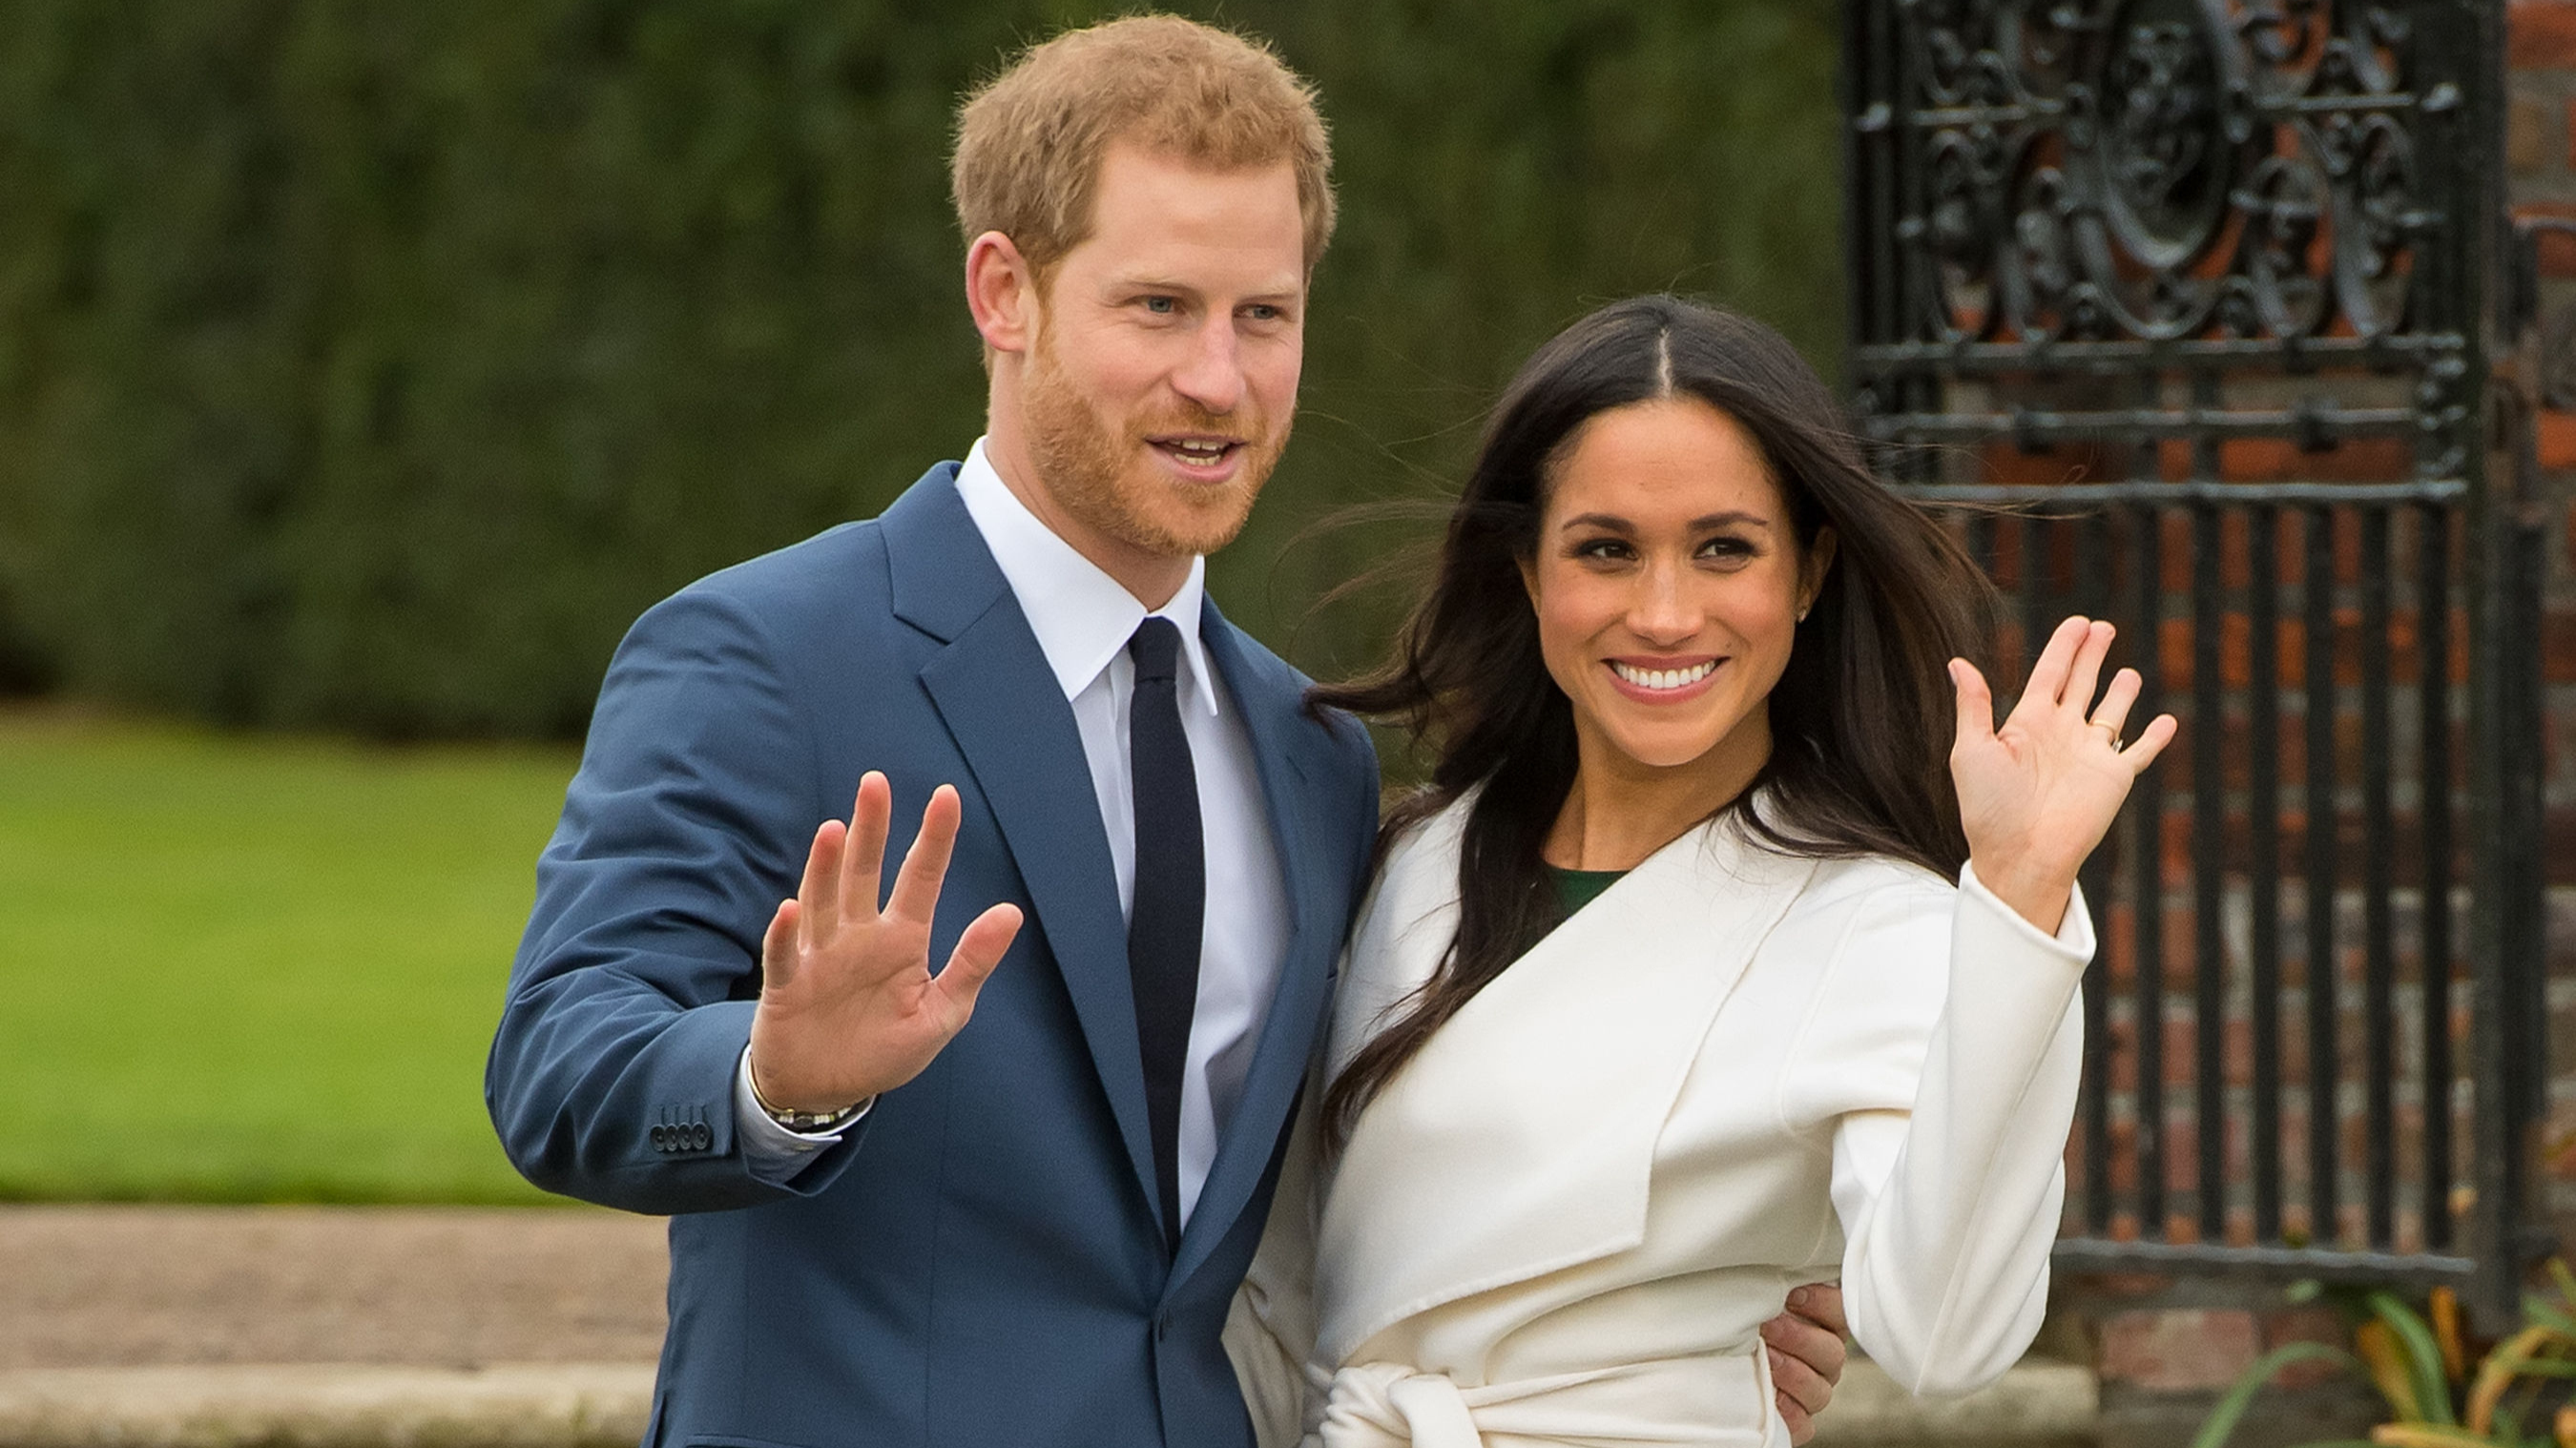 Meghan Markle's Brother Asks Prince Harry To Call The Wedding Off